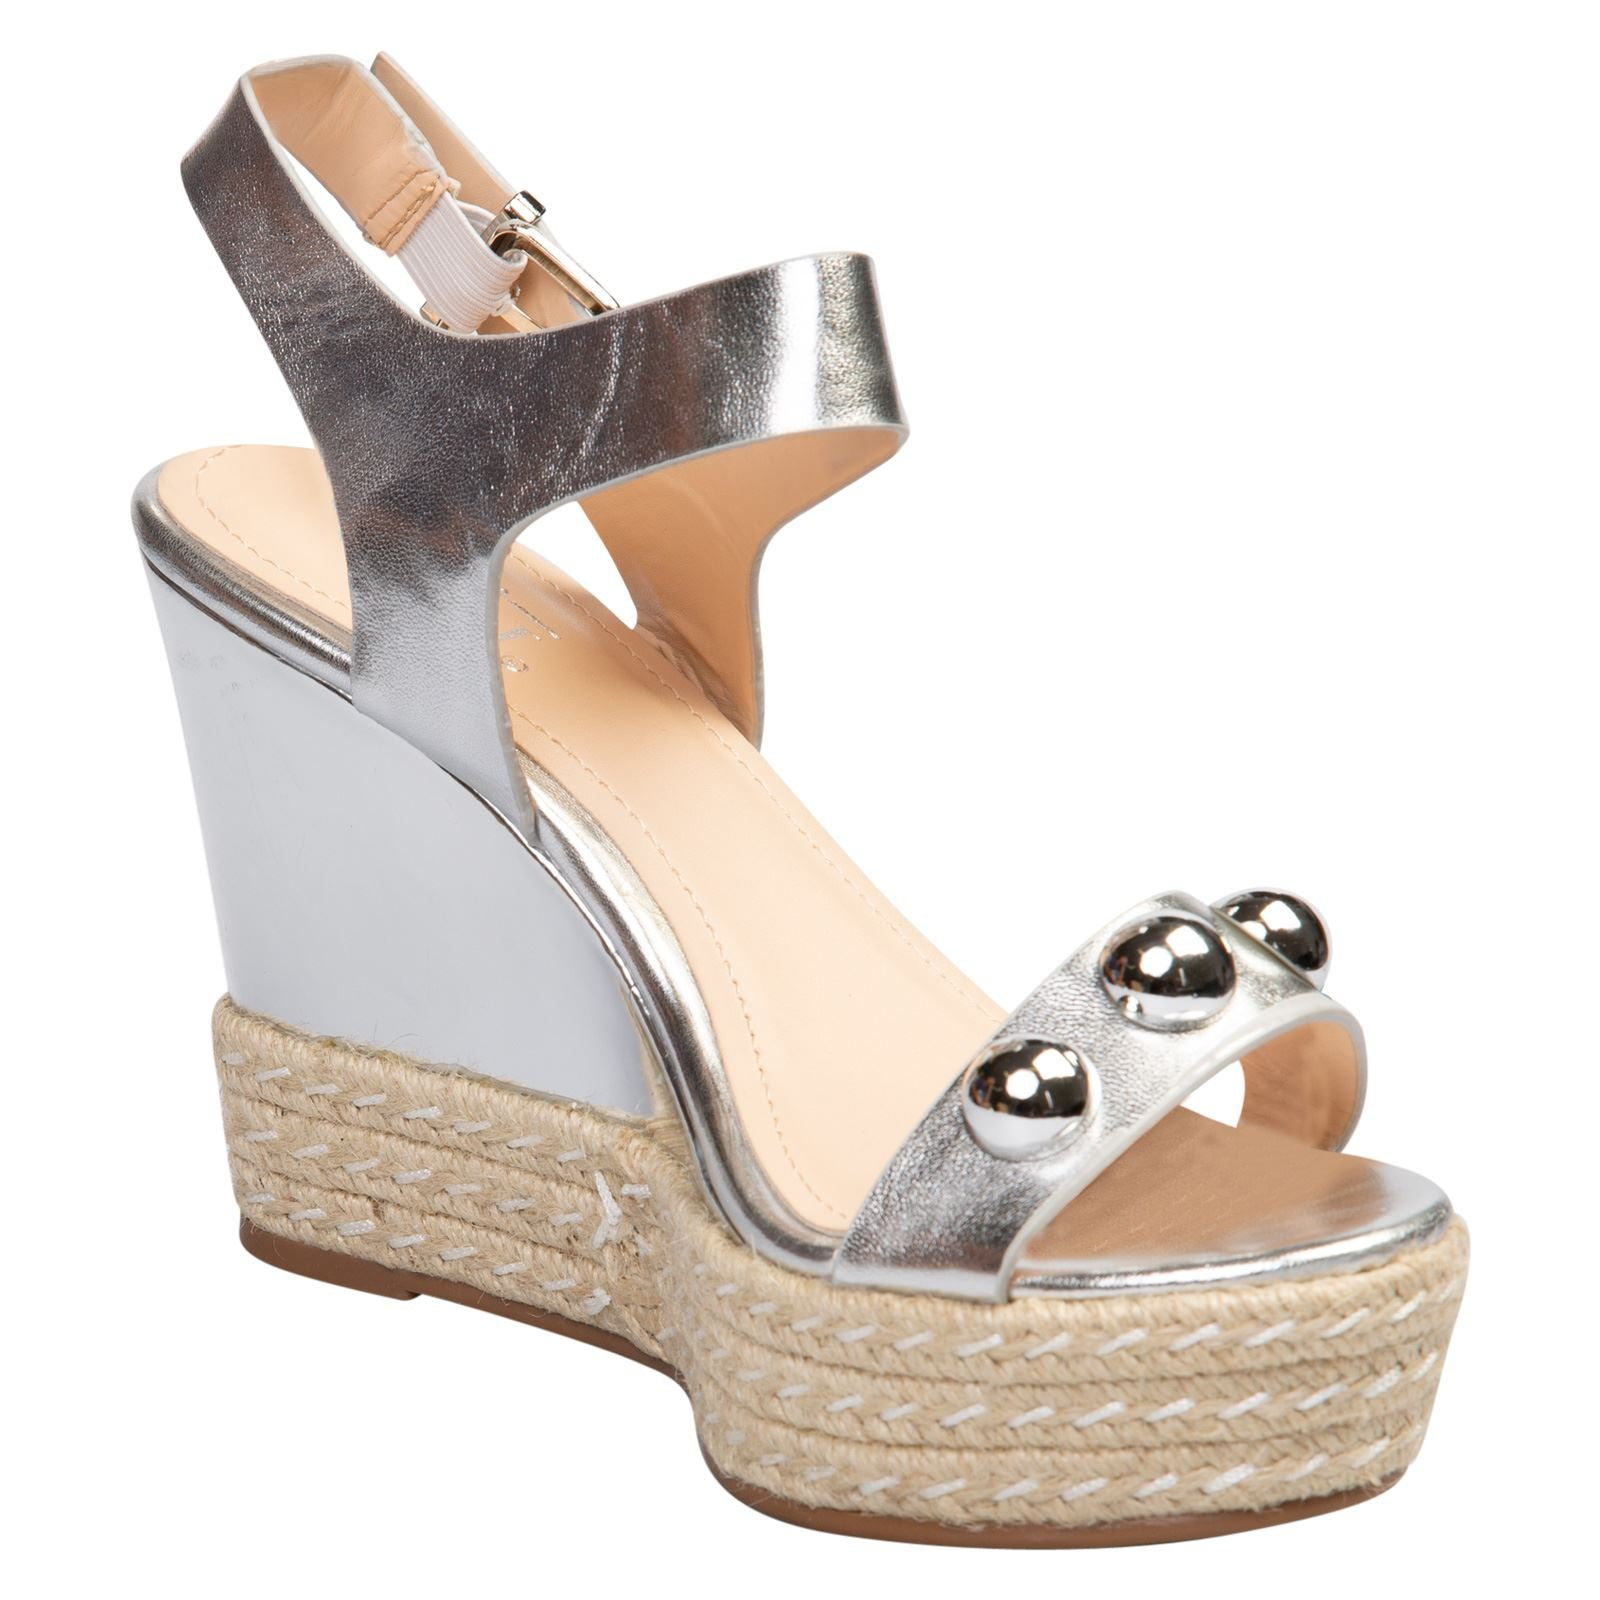 Iolanthe Studded Platform Sandals in Silver Faux Leather - Feet First Fashion